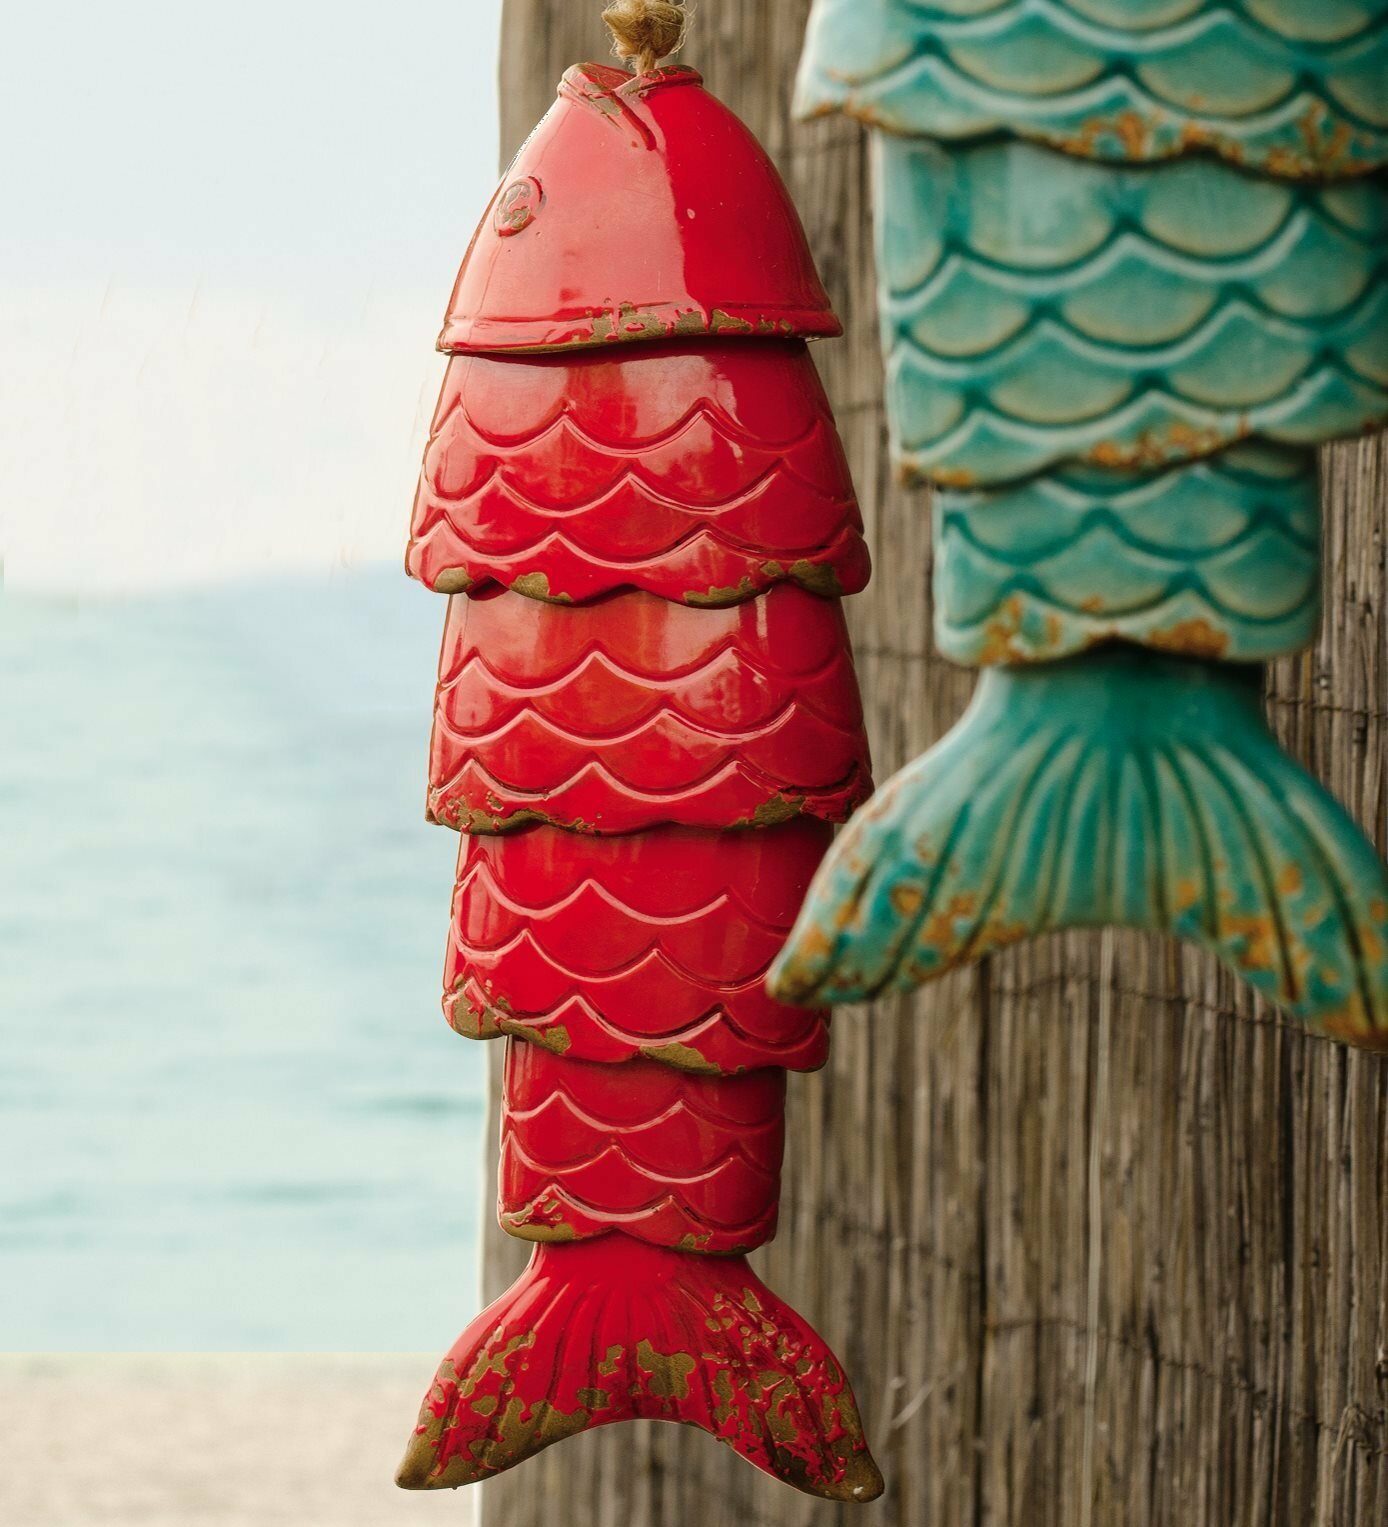 Wind Amp Weather Colored Porcelain Koi Fish Wind Chime